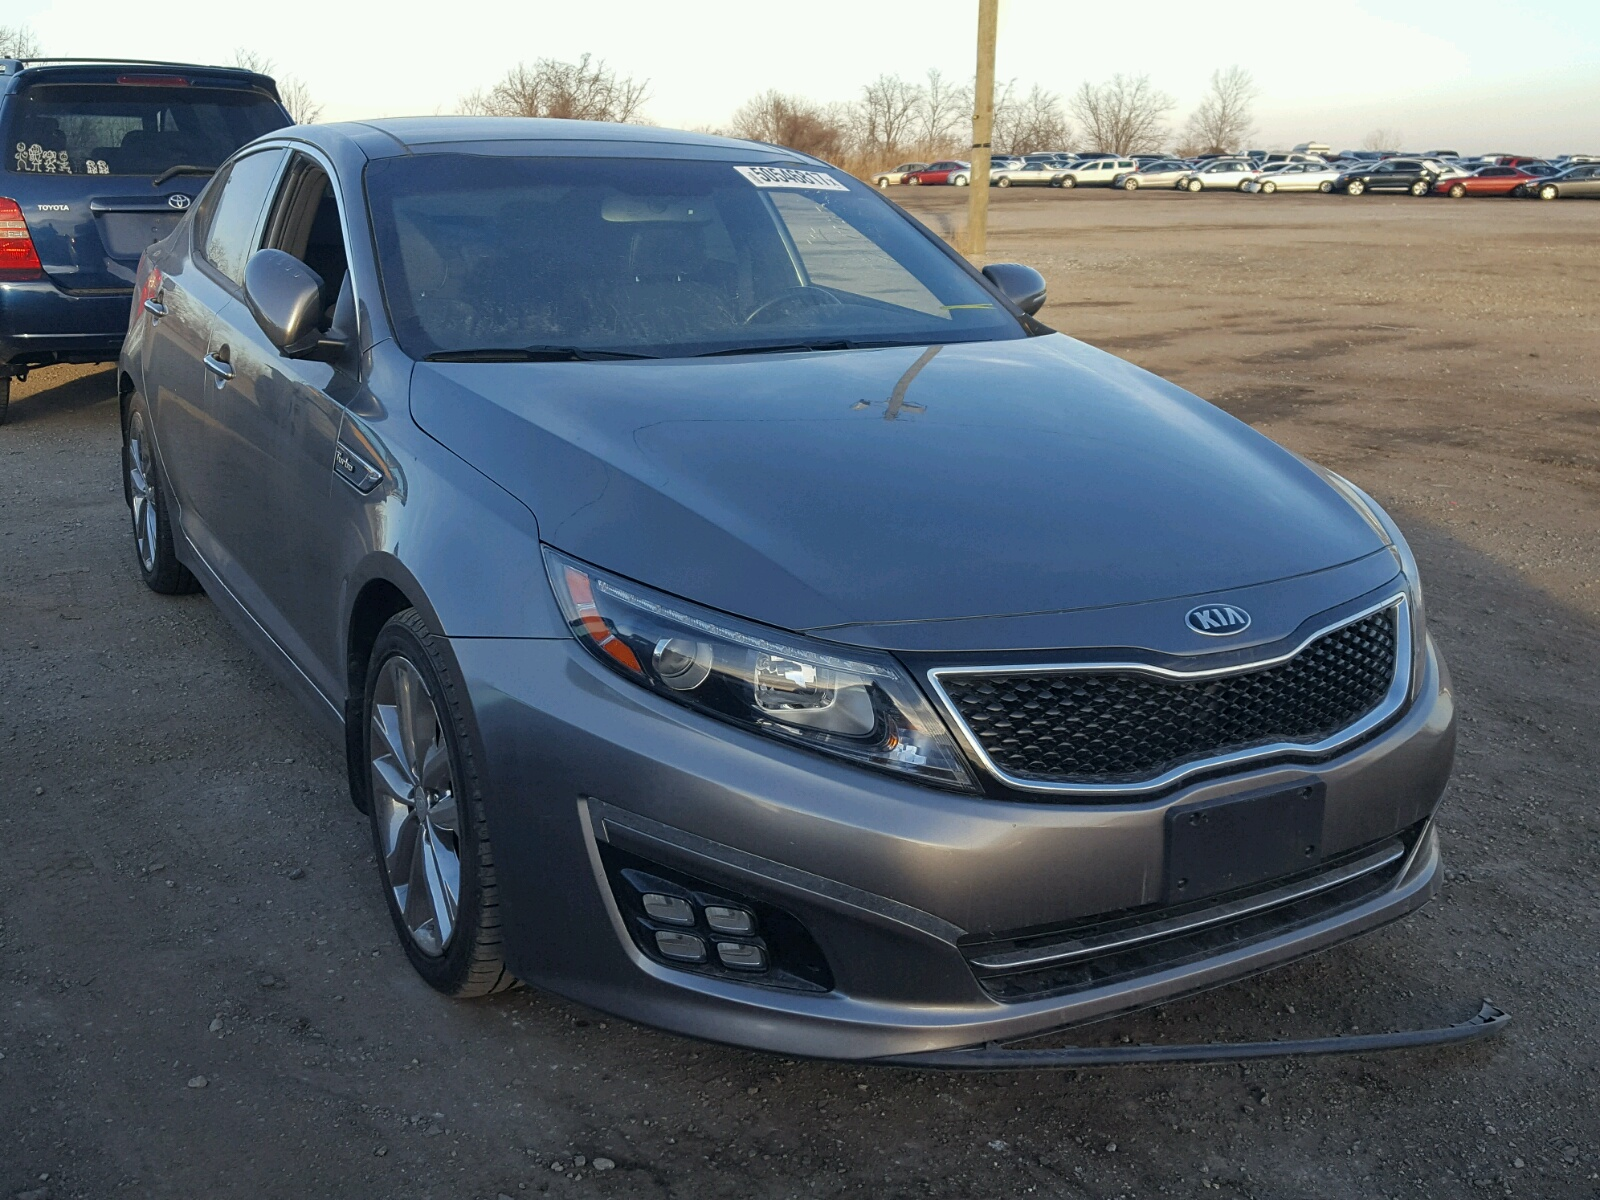 canada front reviews three sx quarters optima cars kia trend motor en and rating